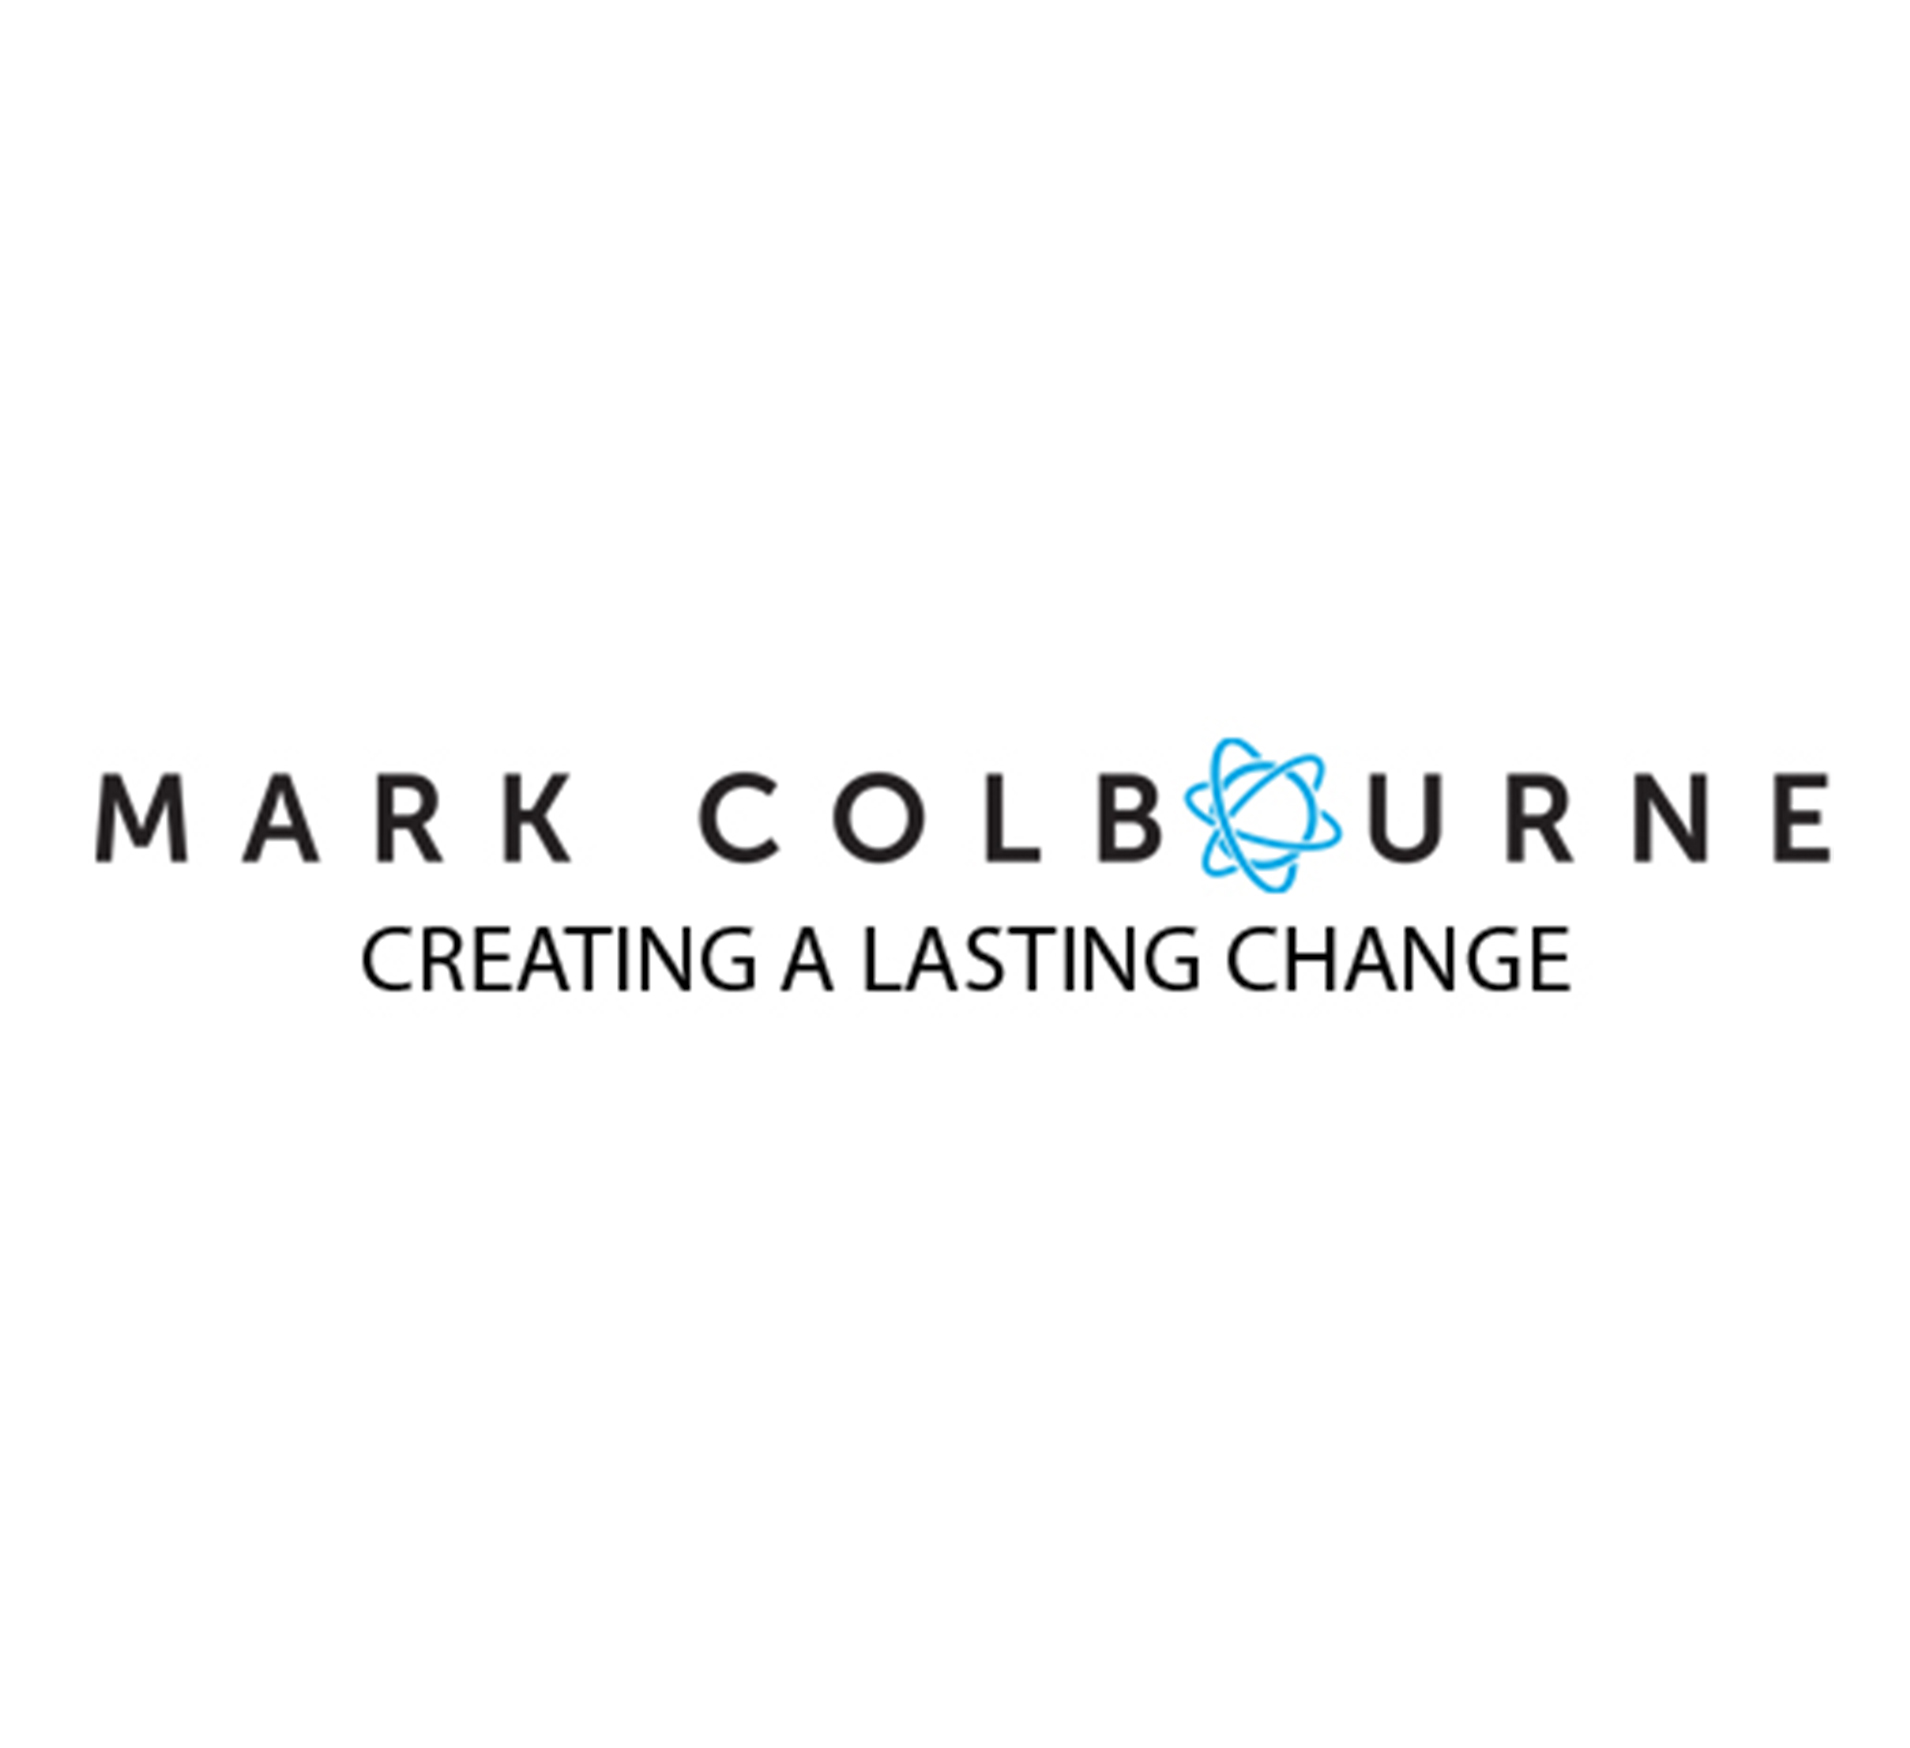 Mark Colbourne